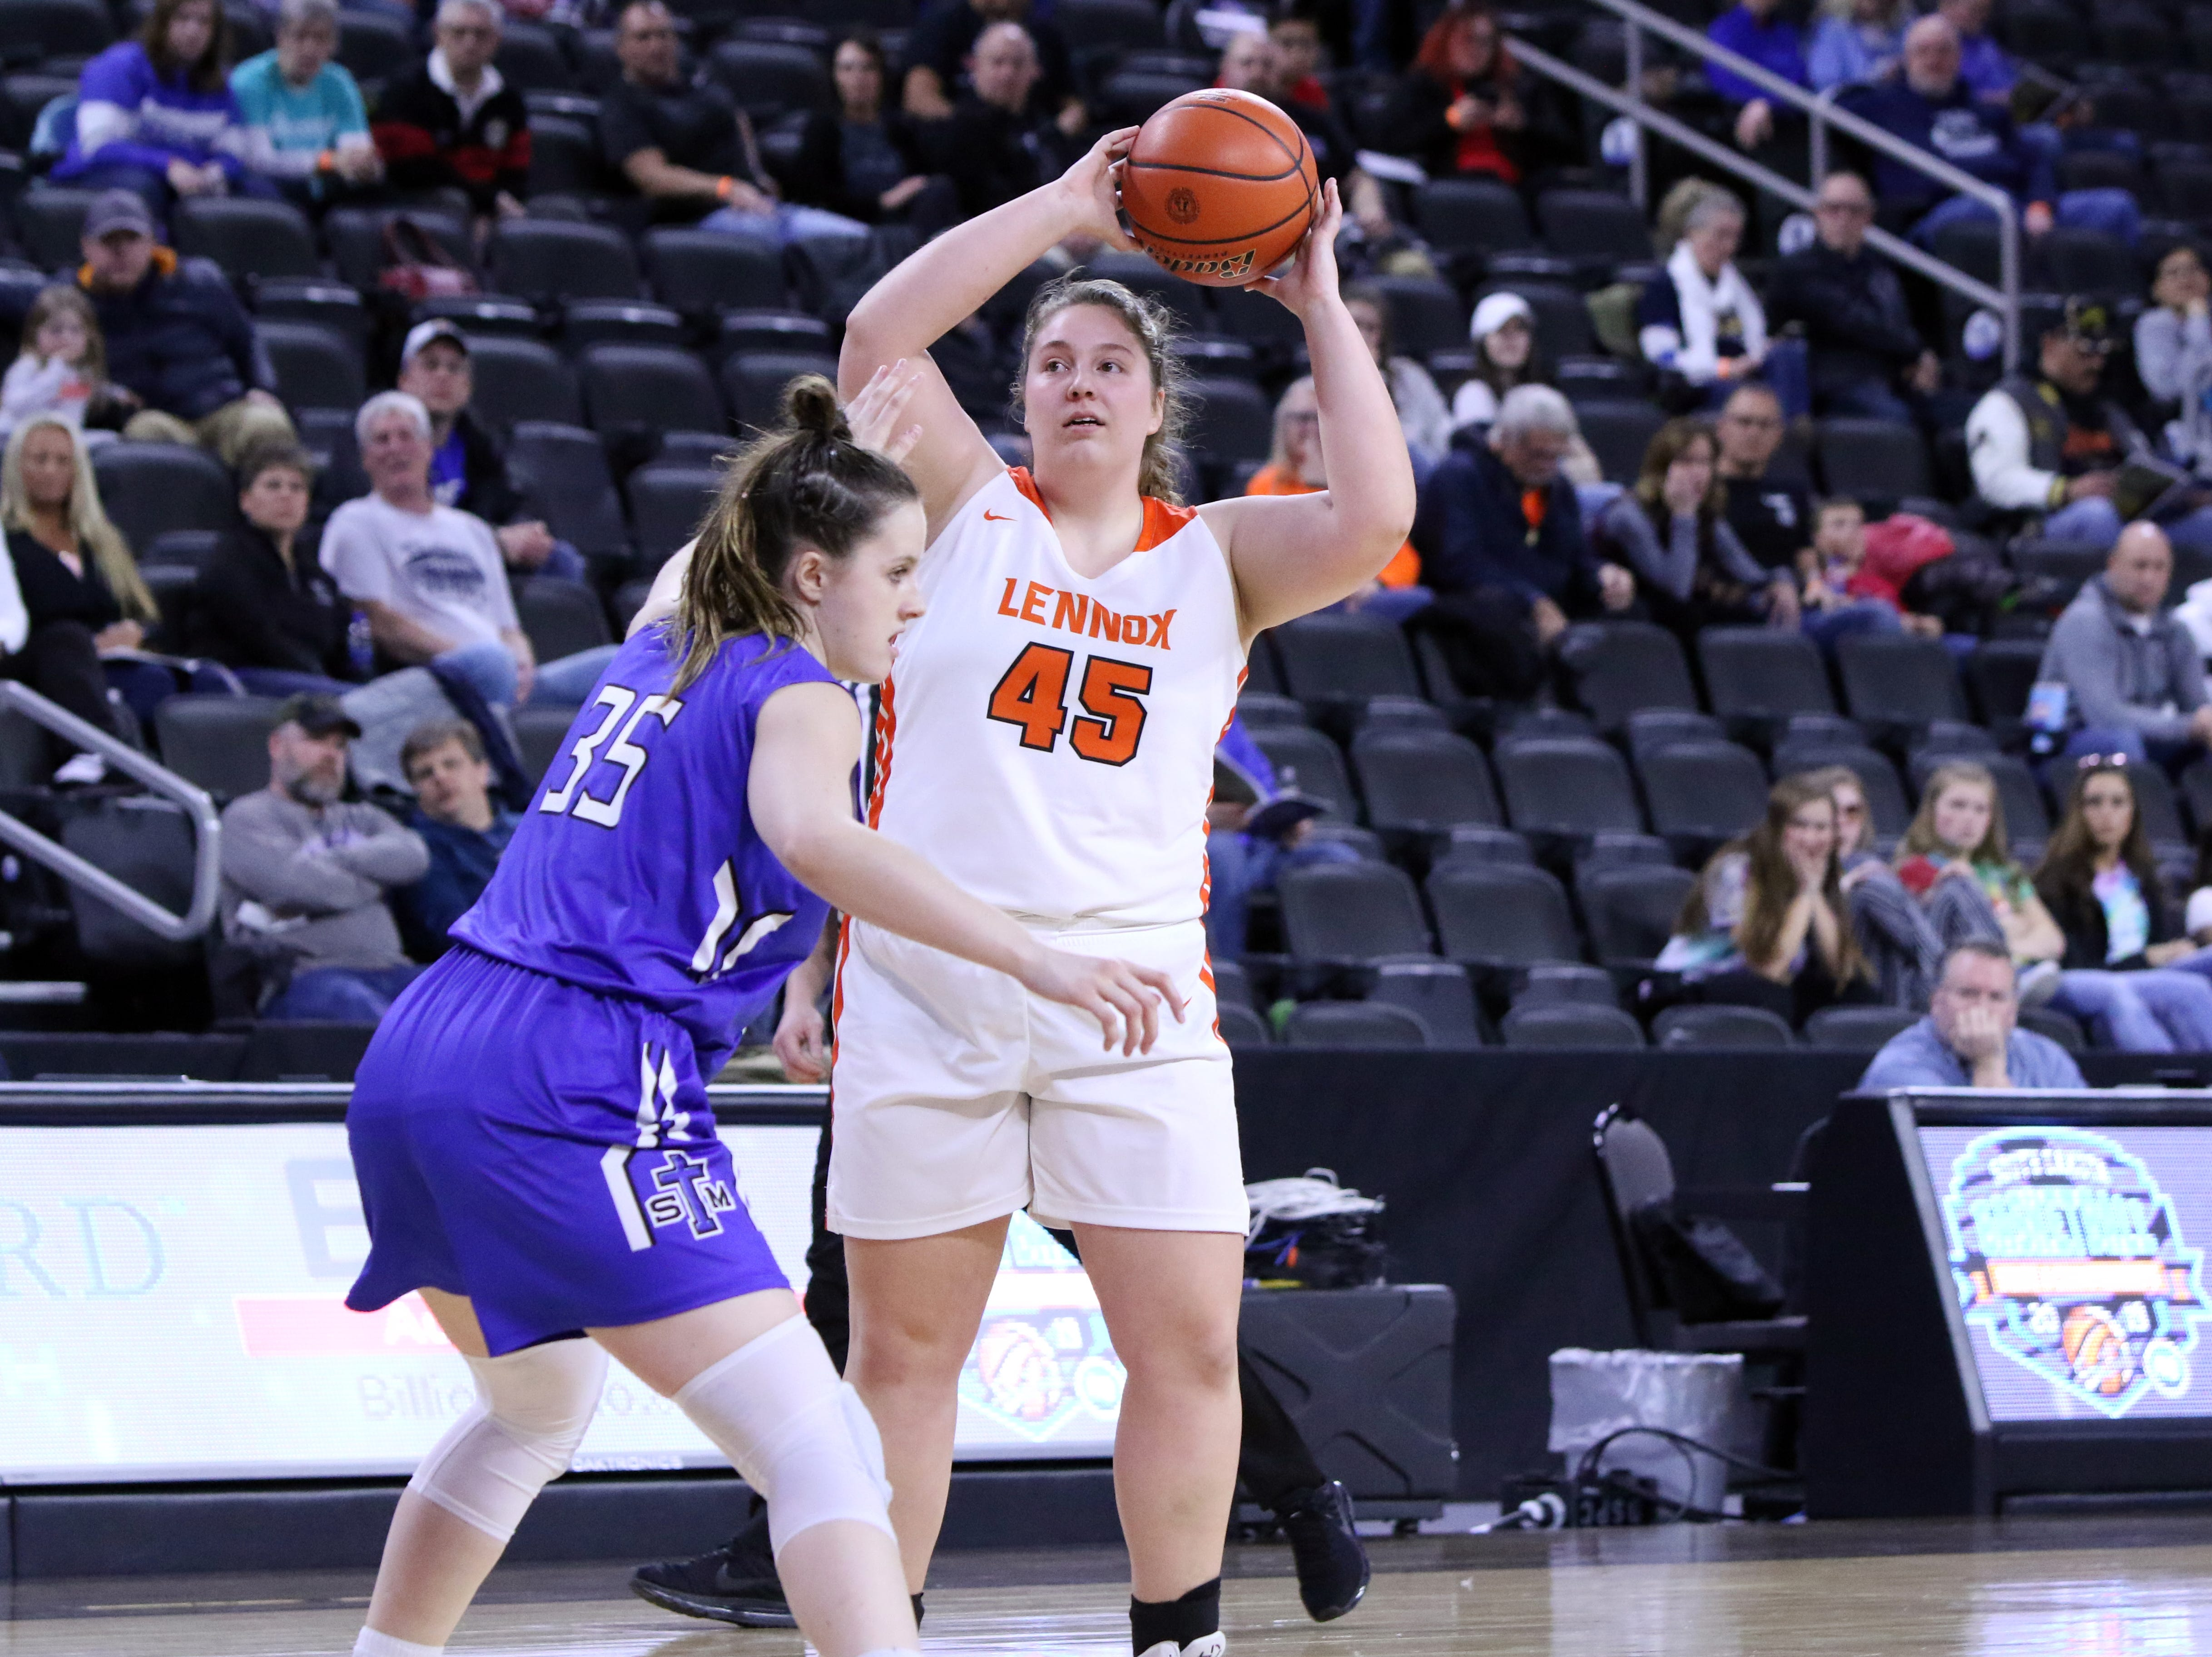 Leslie Fillipi of Lennox looks to pass the ball as Lizzy Elder of St Thomas More defends during Thursday's game at the Premier Center in Sioux Falls.